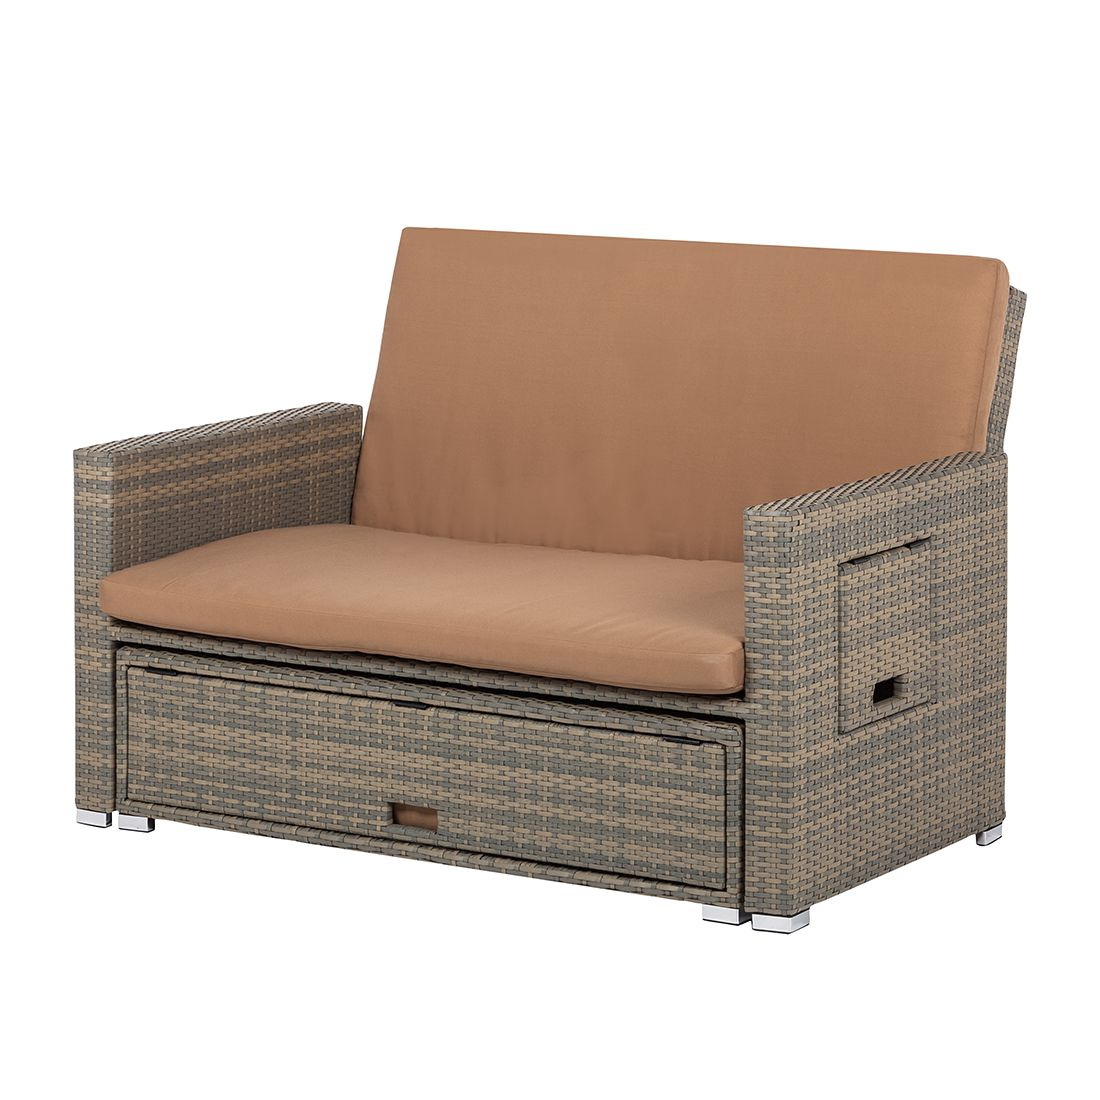 loungesofa muuse mit schlaffunktion polyrattan anthrazit cognac ebay. Black Bedroom Furniture Sets. Home Design Ideas